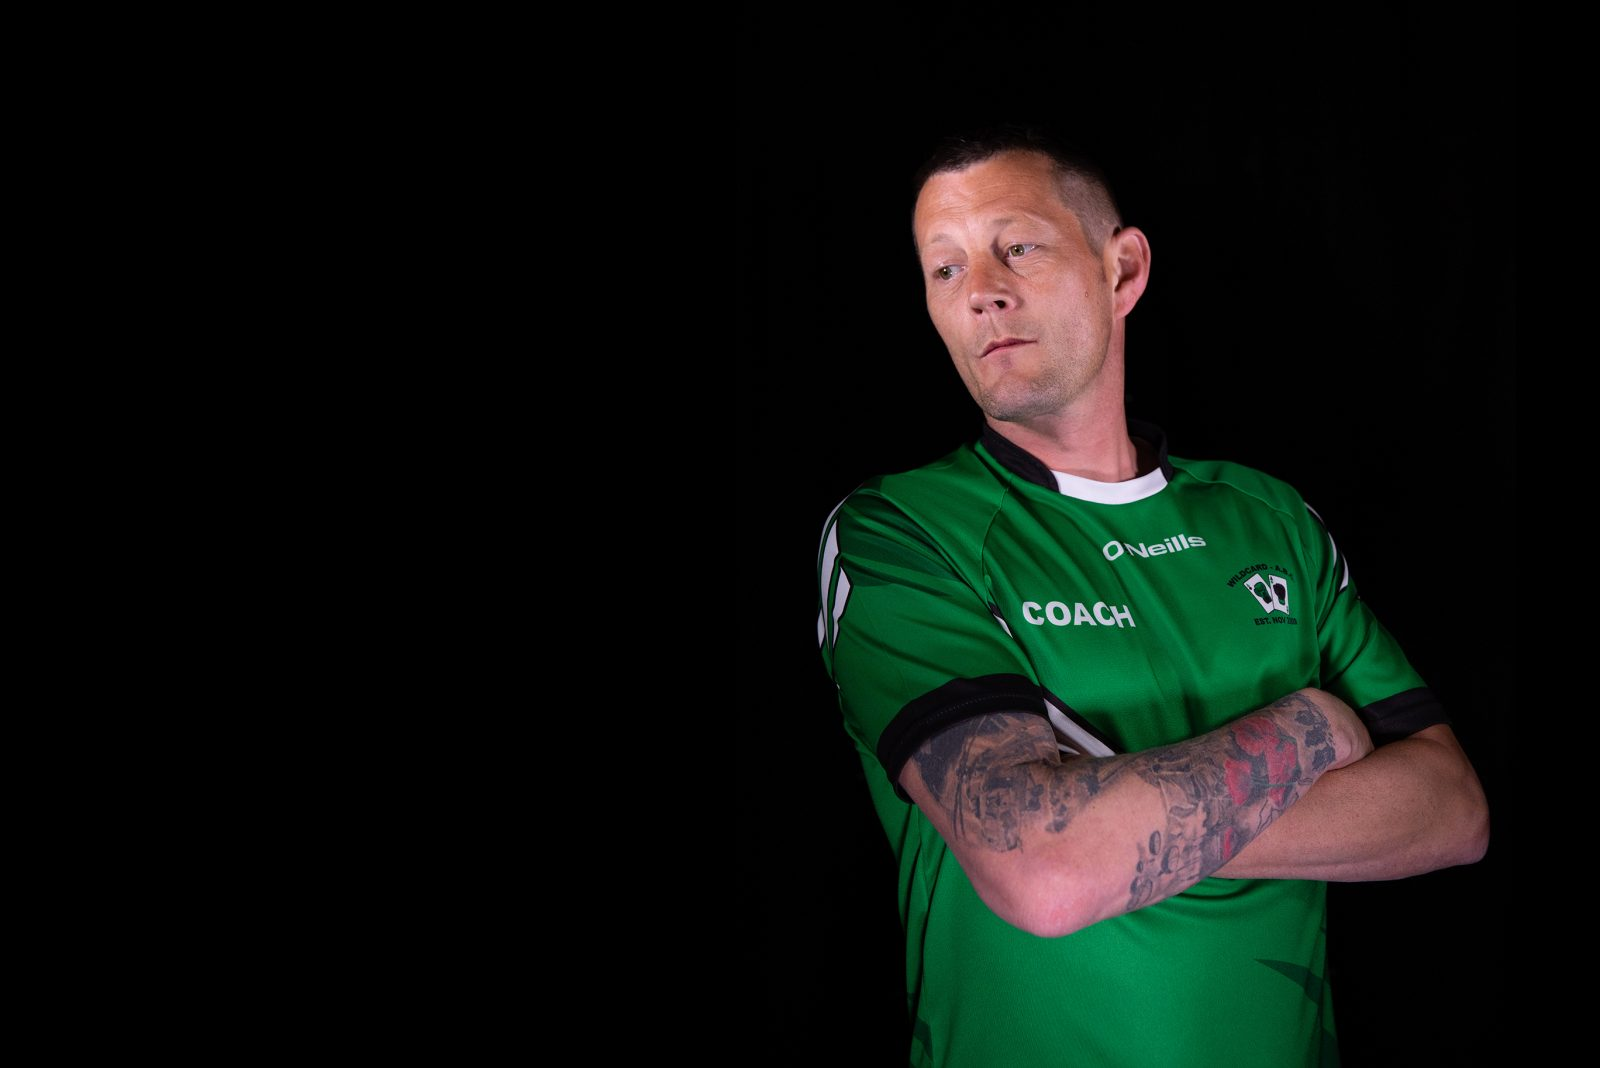 A man with tattoos on one arm, wearing a  green sports top stands with crossed arms and looks to one side.